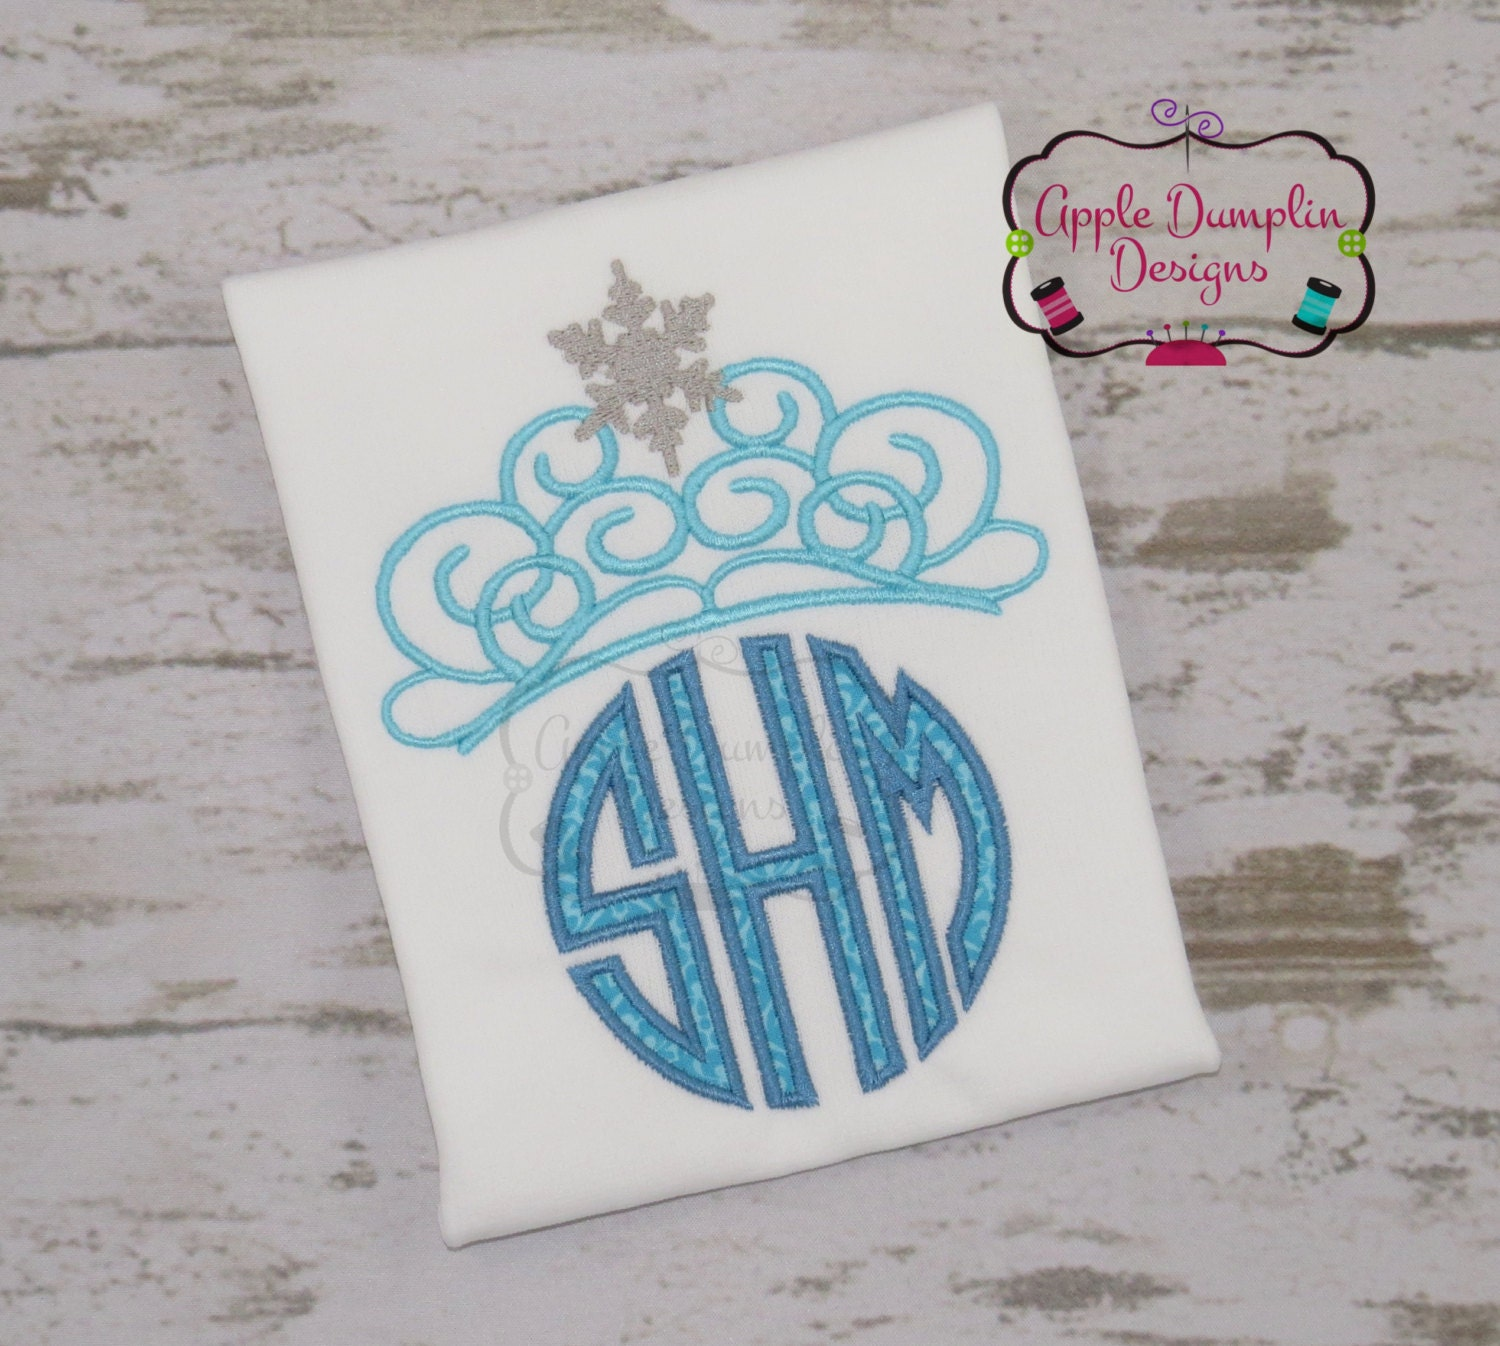 Snowflake Tiara Machine Embroidery Design Applique Monogram | Etsy